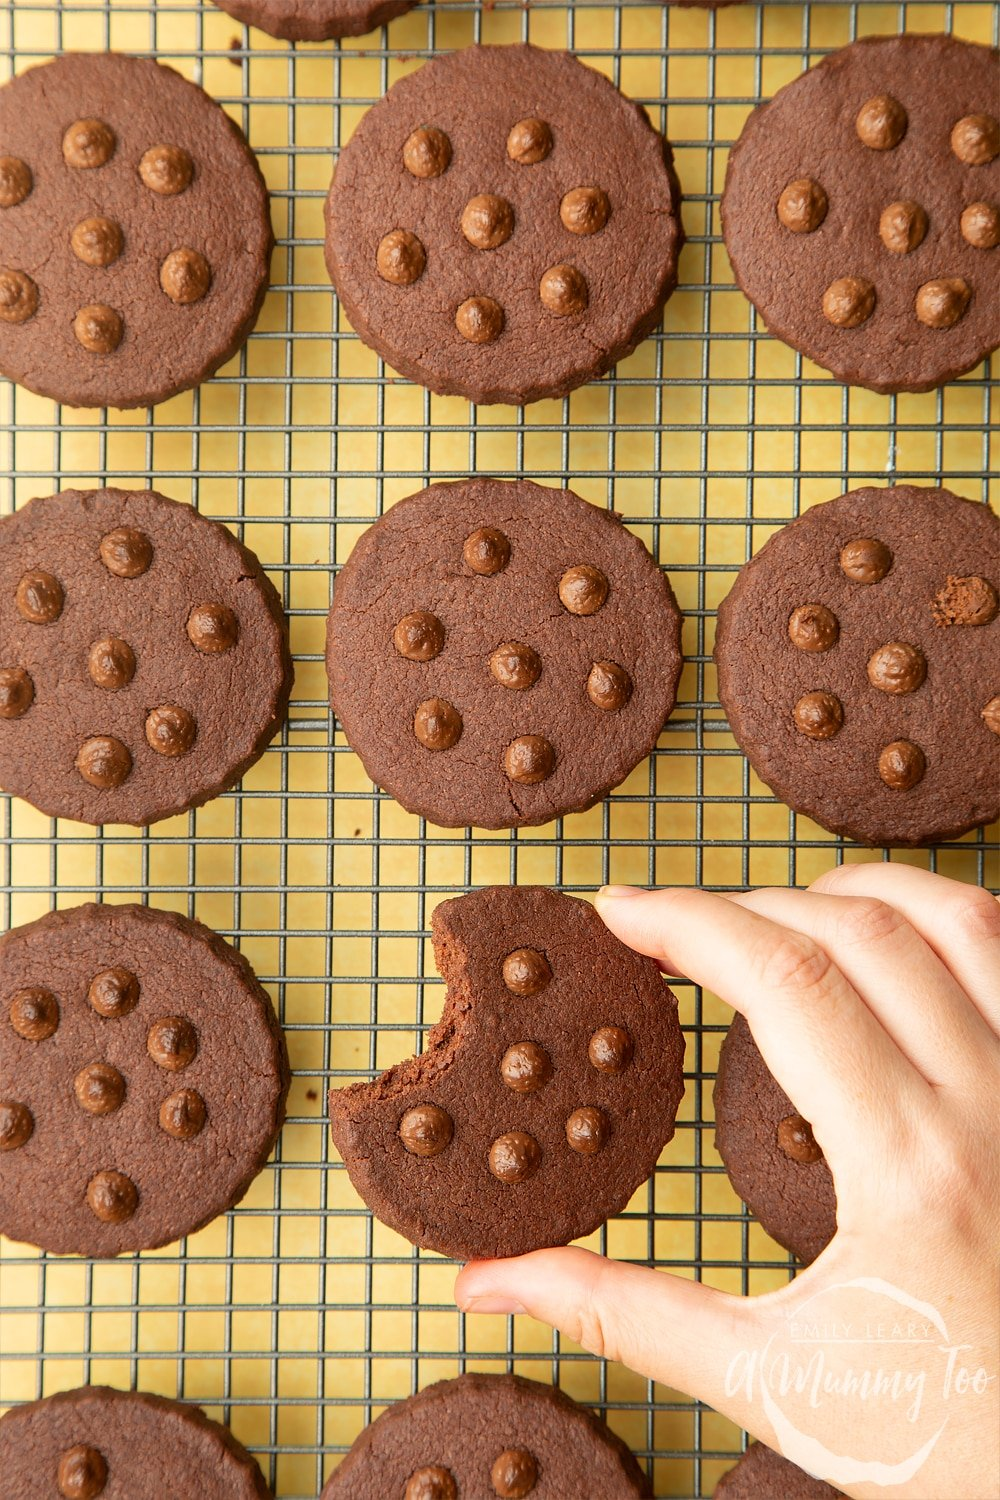 Chocolate shortbread cookies, studded with chocolate drops, cooling on a wire rack. A hand holding one of the cookies, with a bit taken out of it.